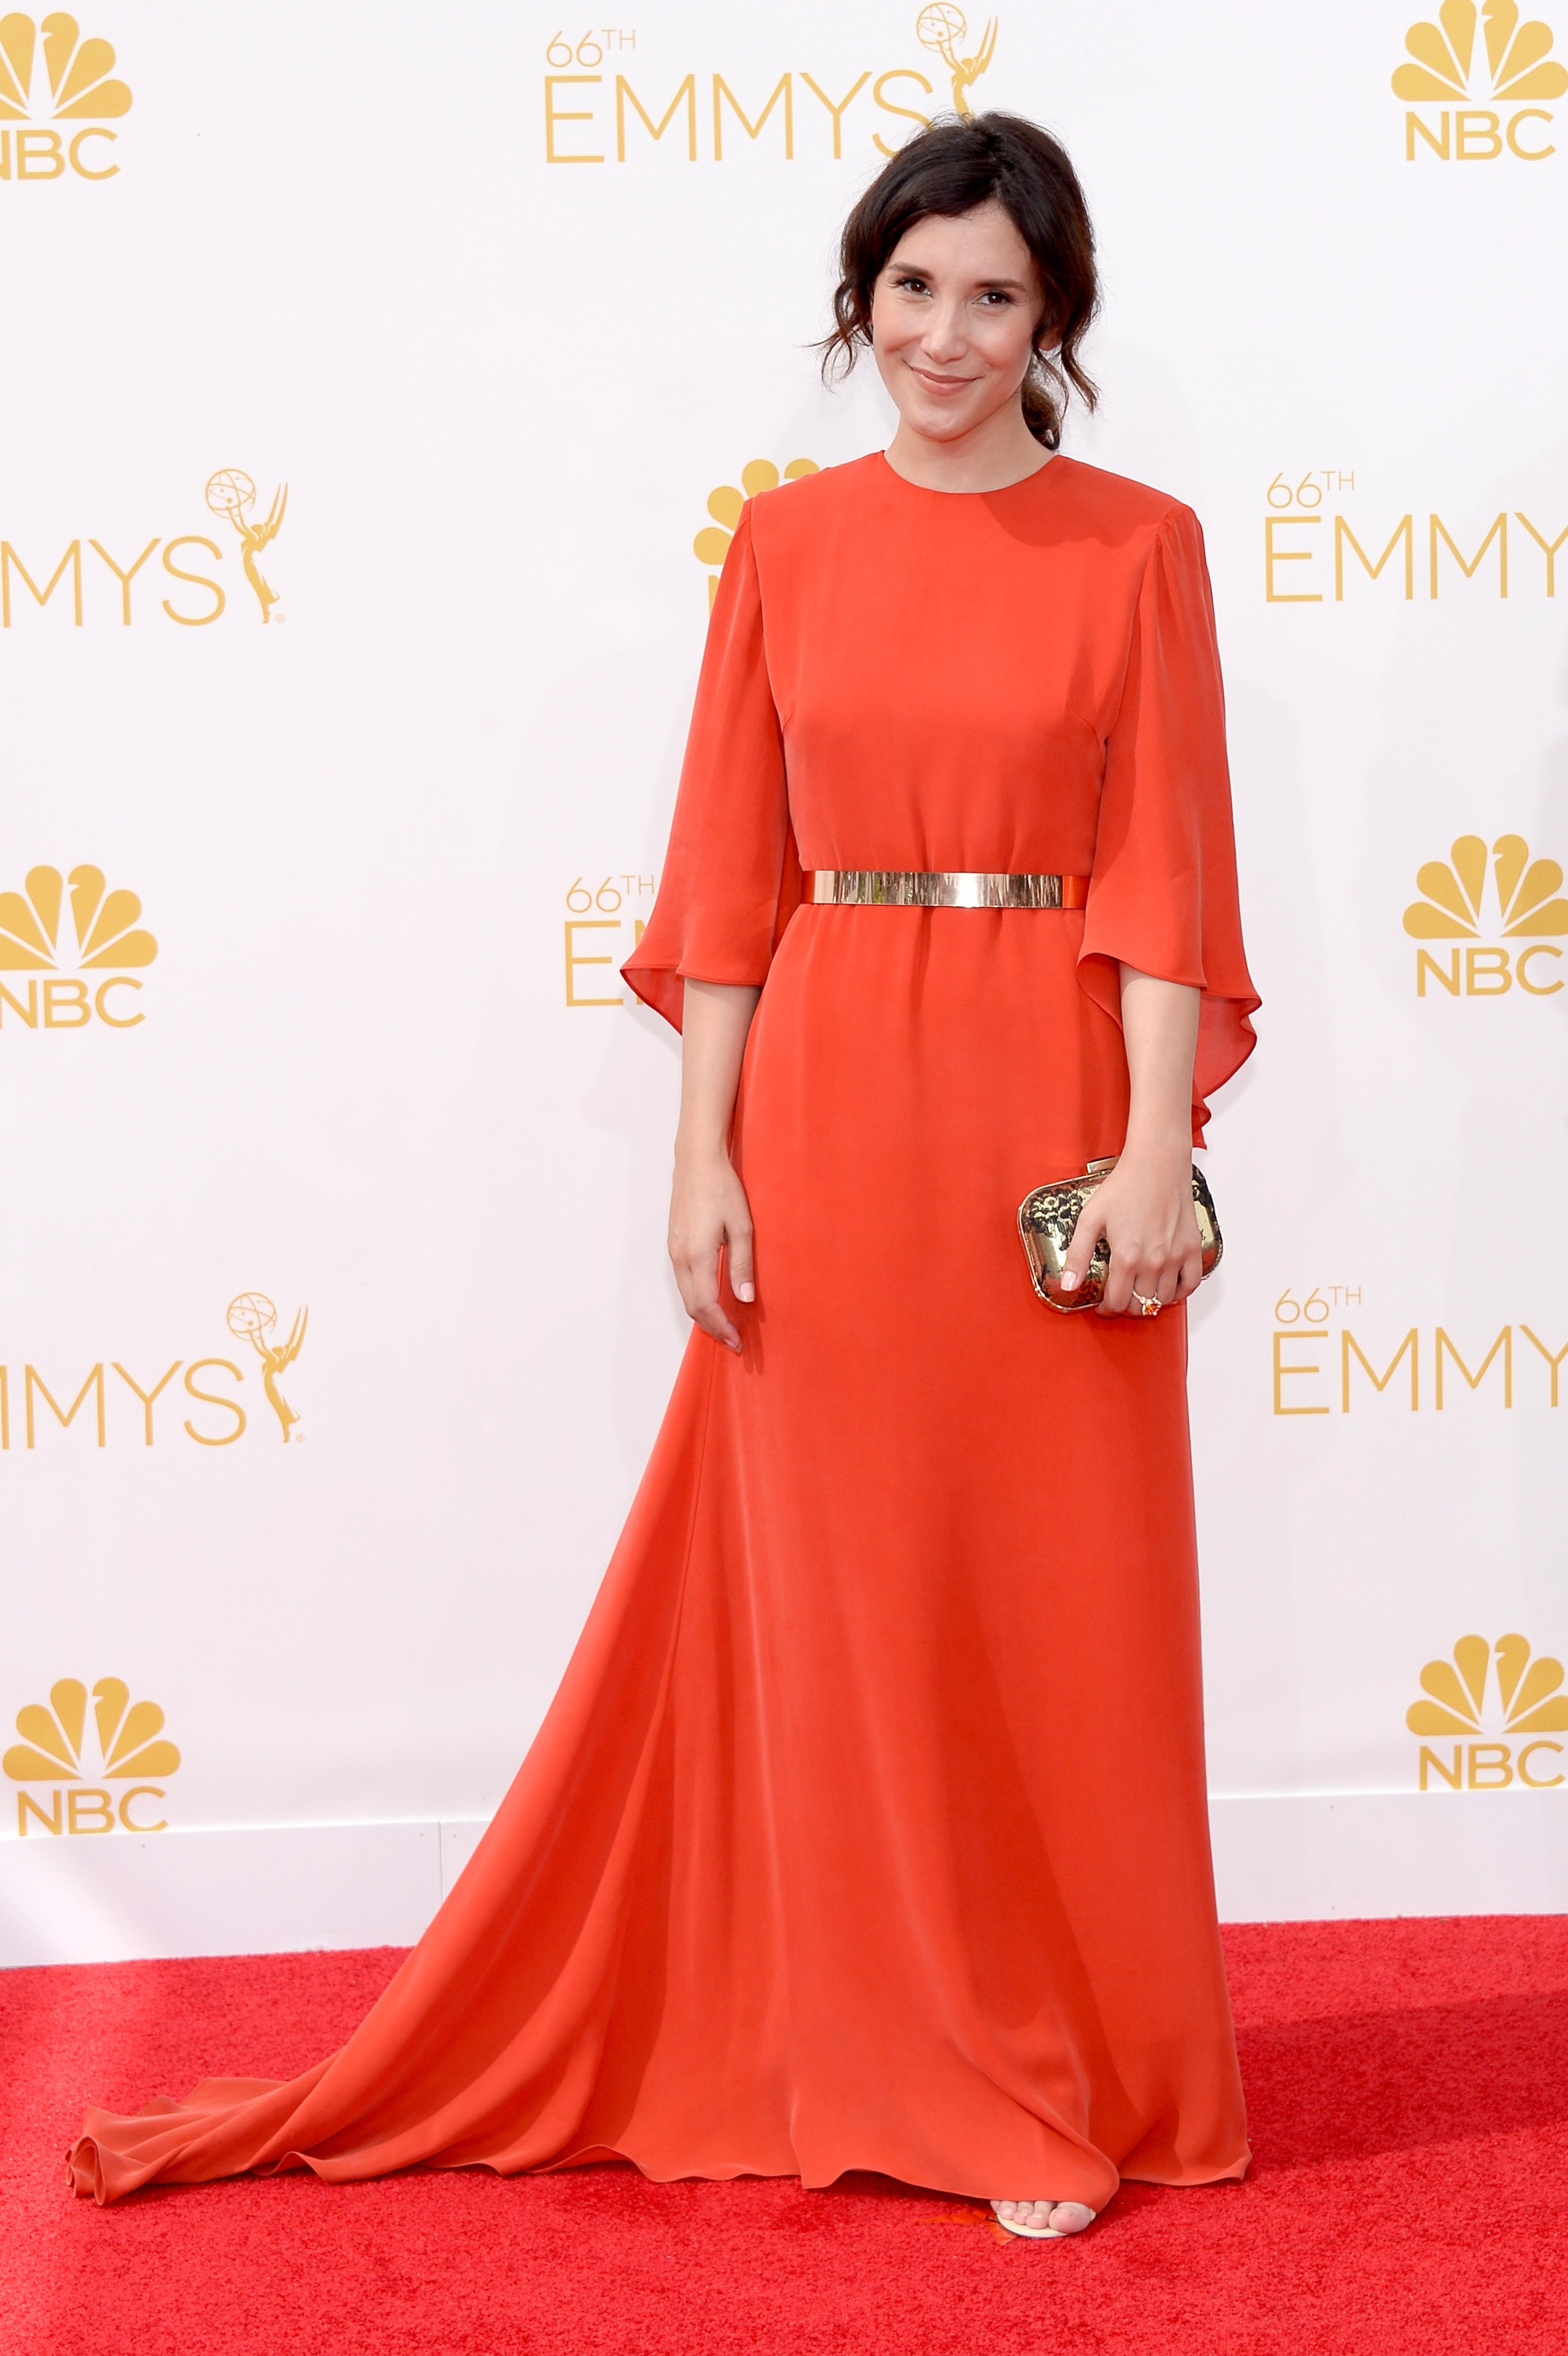 Sibel Kekilli arrives to the 66th Annual Primetime Emmy Awards held at the Nokia Theater on August 25, 2014.